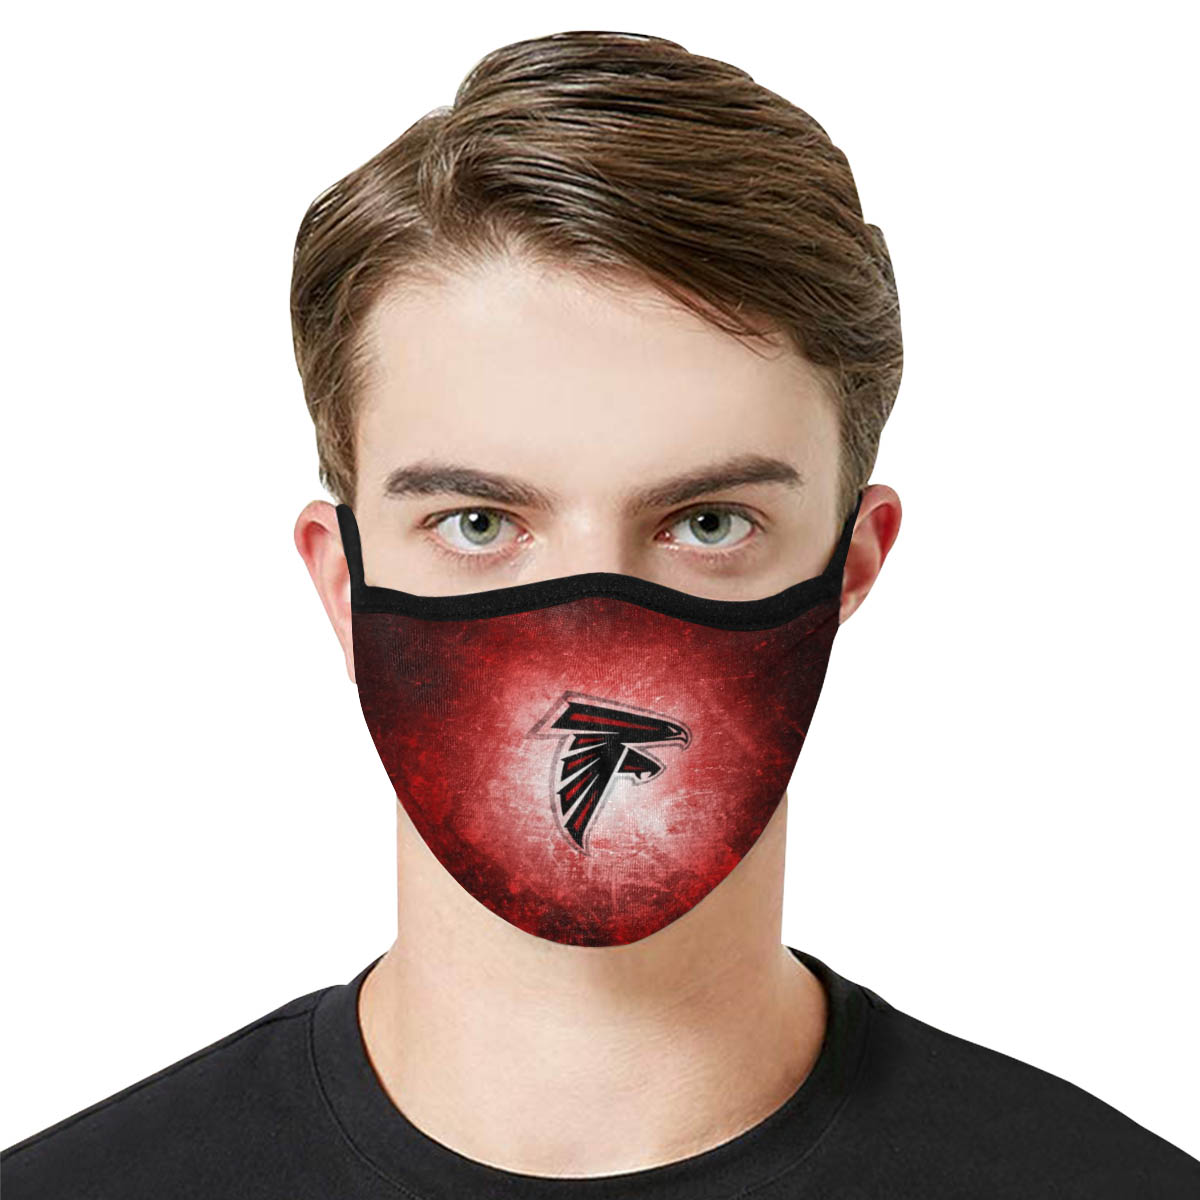 National football league atlanta falcons face mask 4